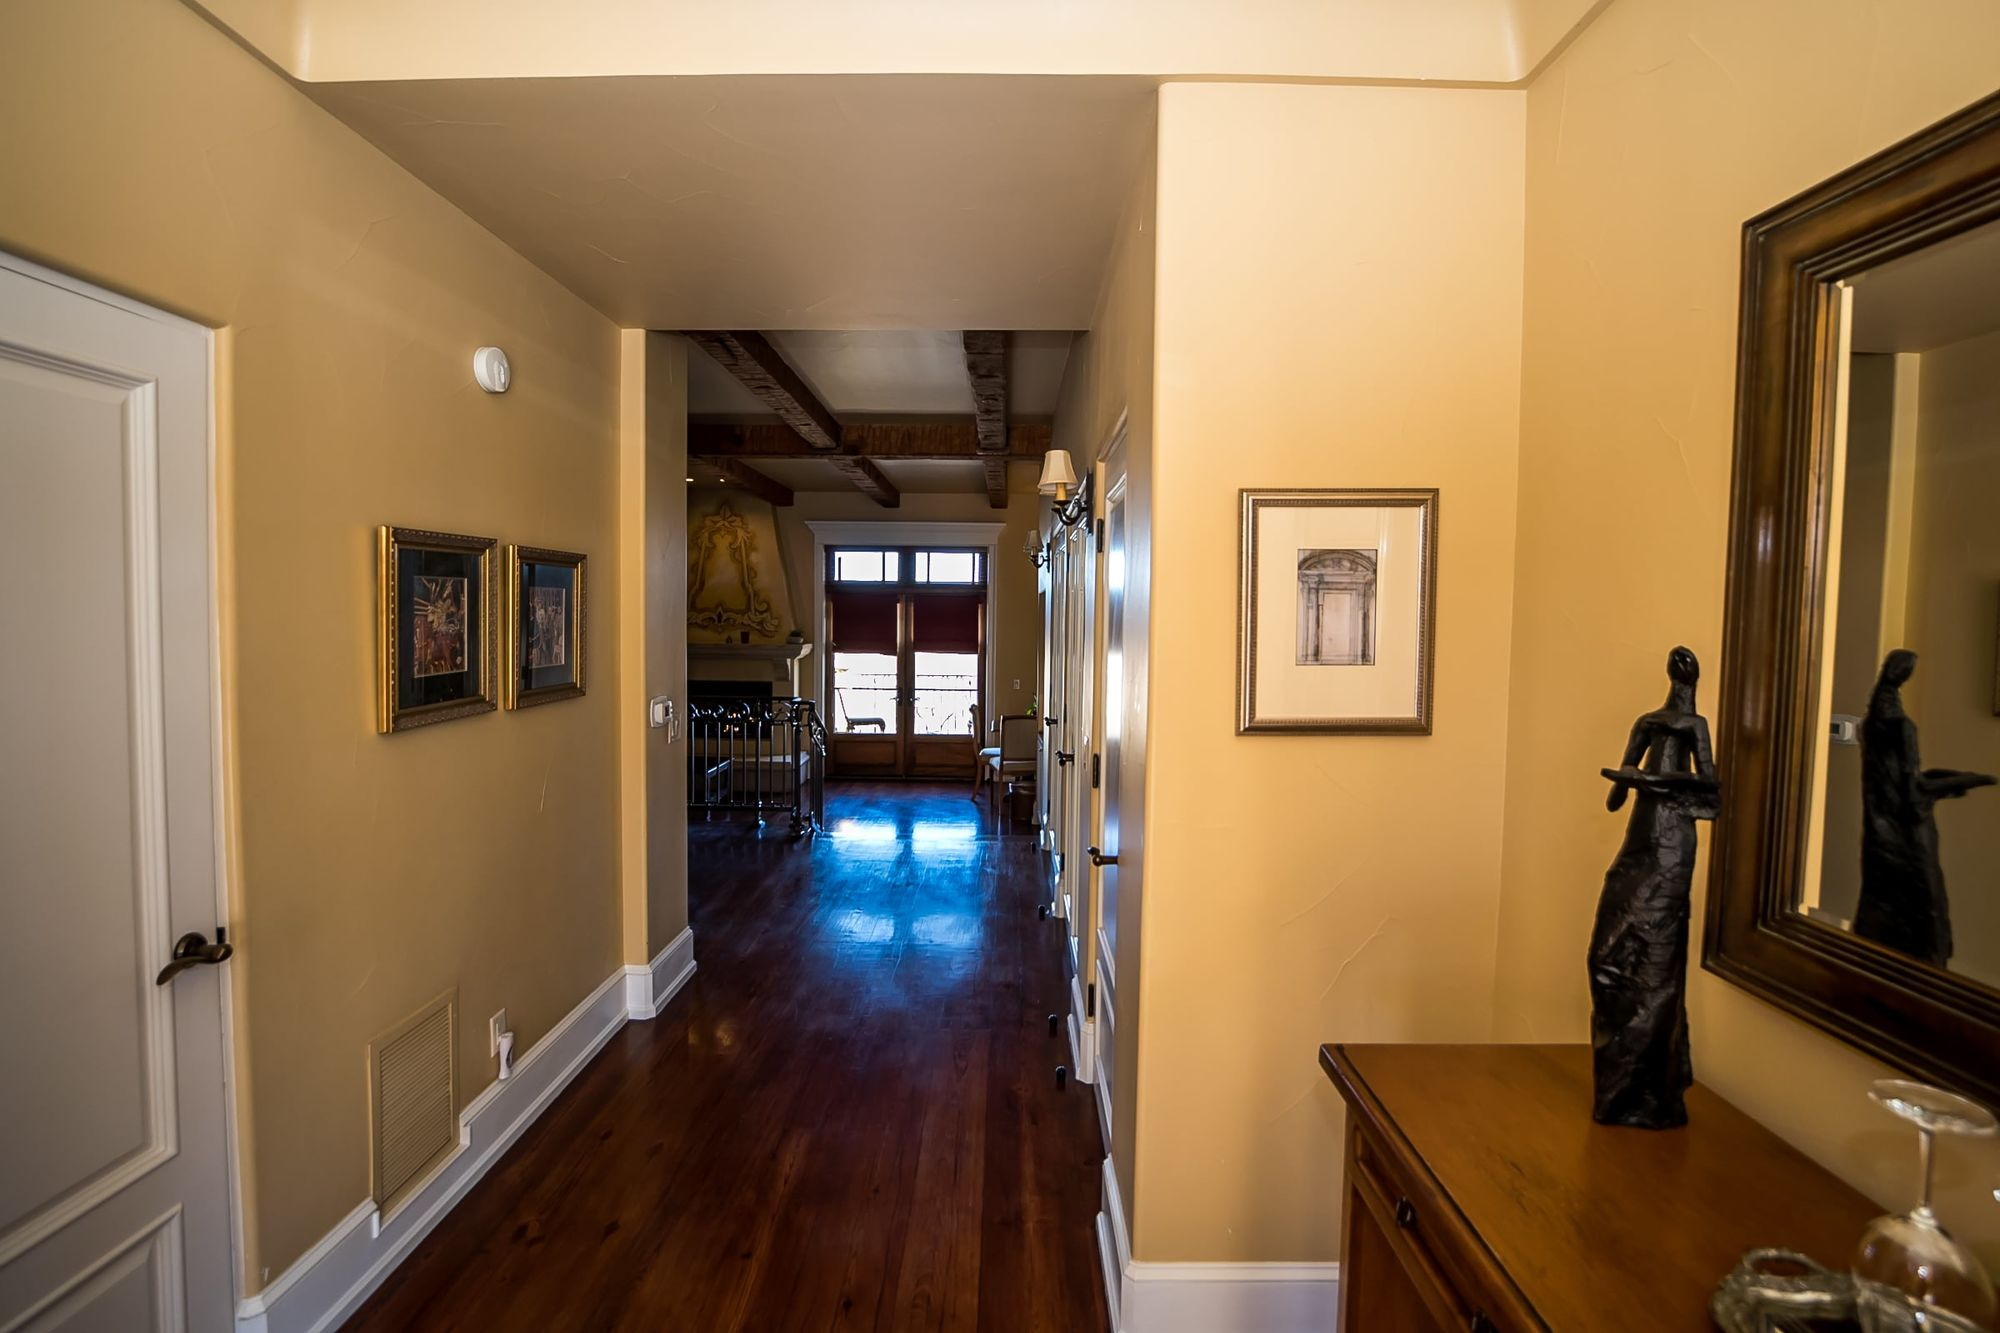 Hallway with side bar to the right and French doors at the end